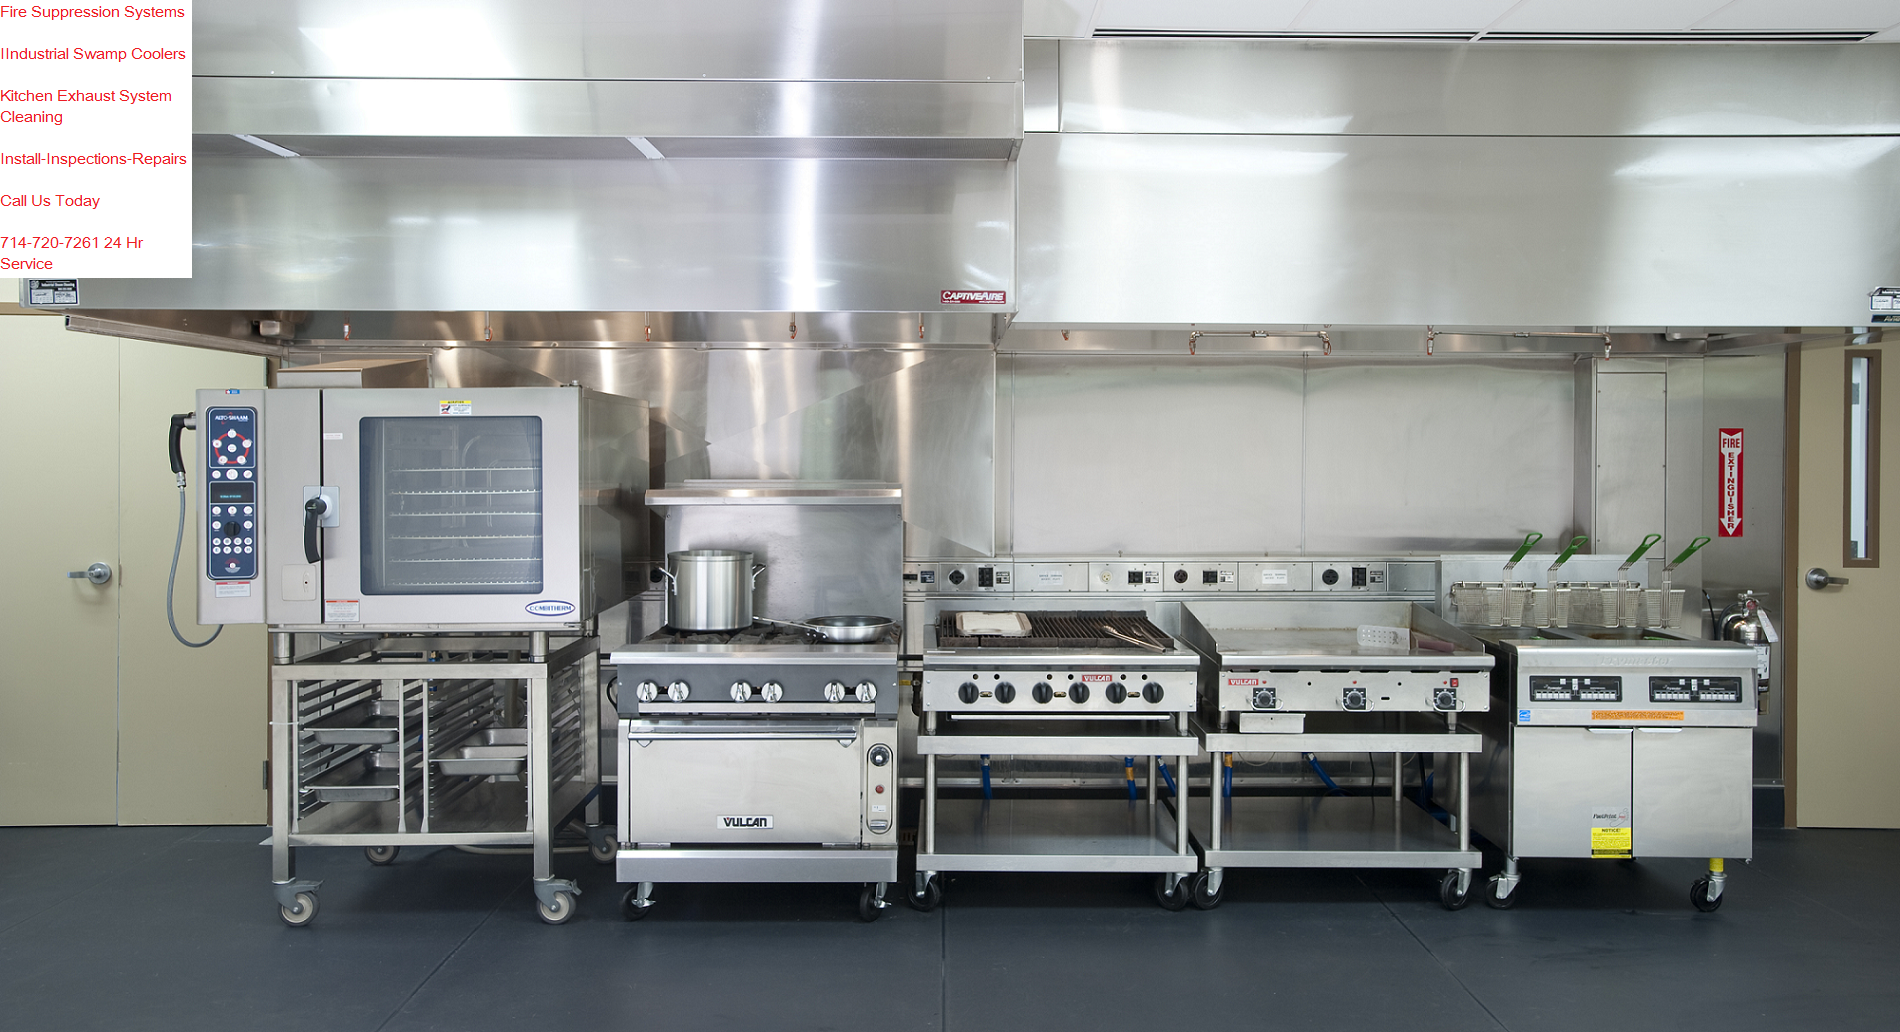 Restaurant Kitchen Hood drs hoods 386-225-5915 | drs hoods uses proven methods for